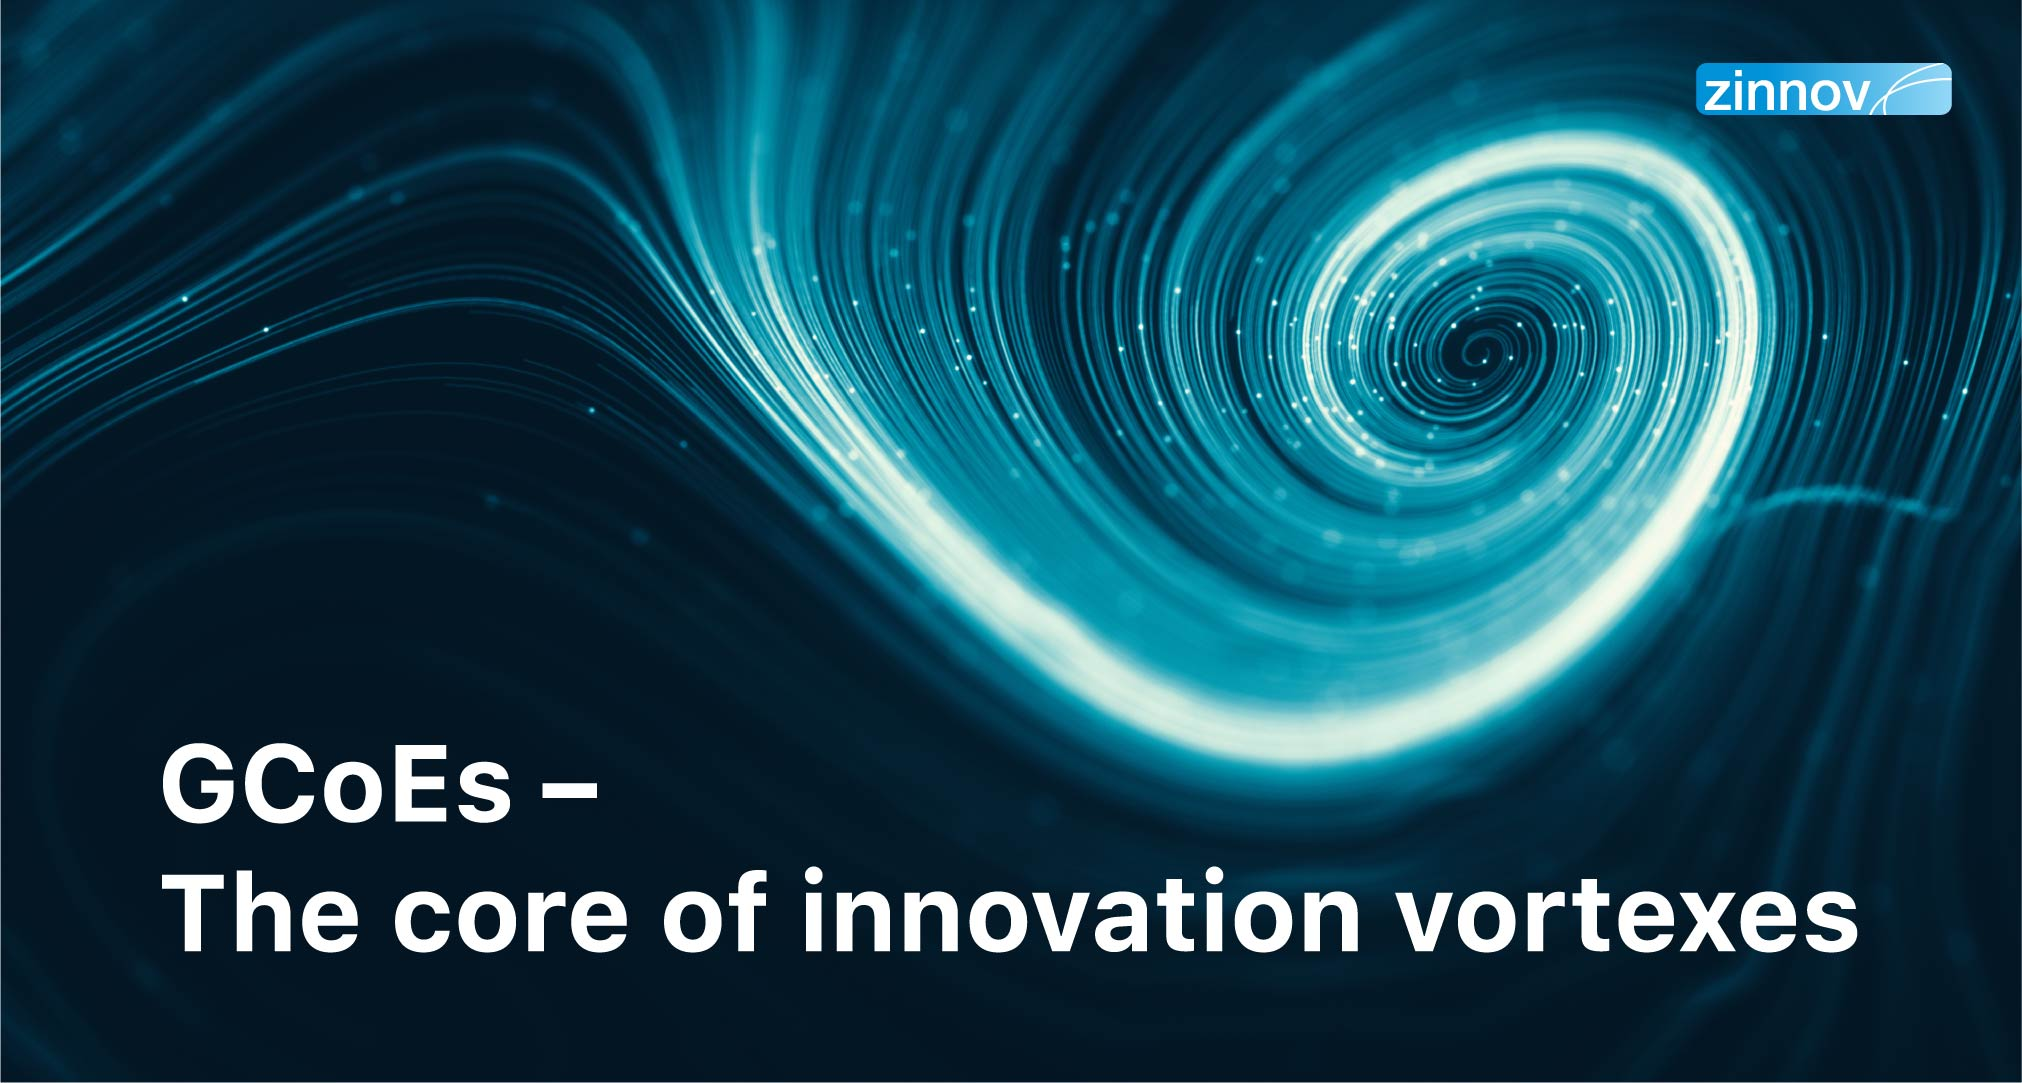 Innovation Vortexes – Global Center Of Excellence At The Core